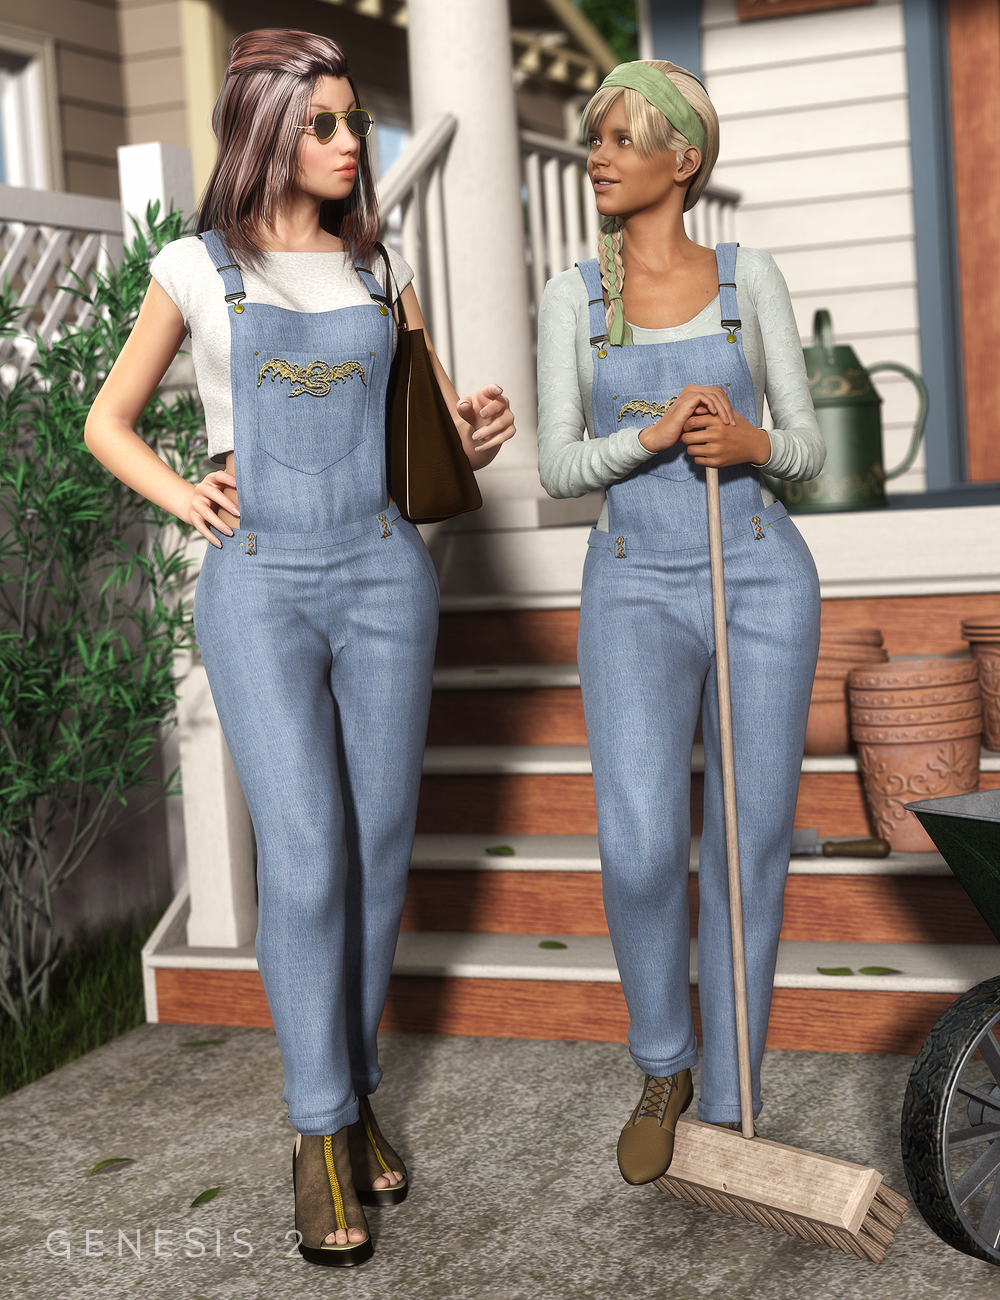 Casual Wear Overall for Genesis 2 Female(s) by: Ravenhair, 3D Models by Daz 3D